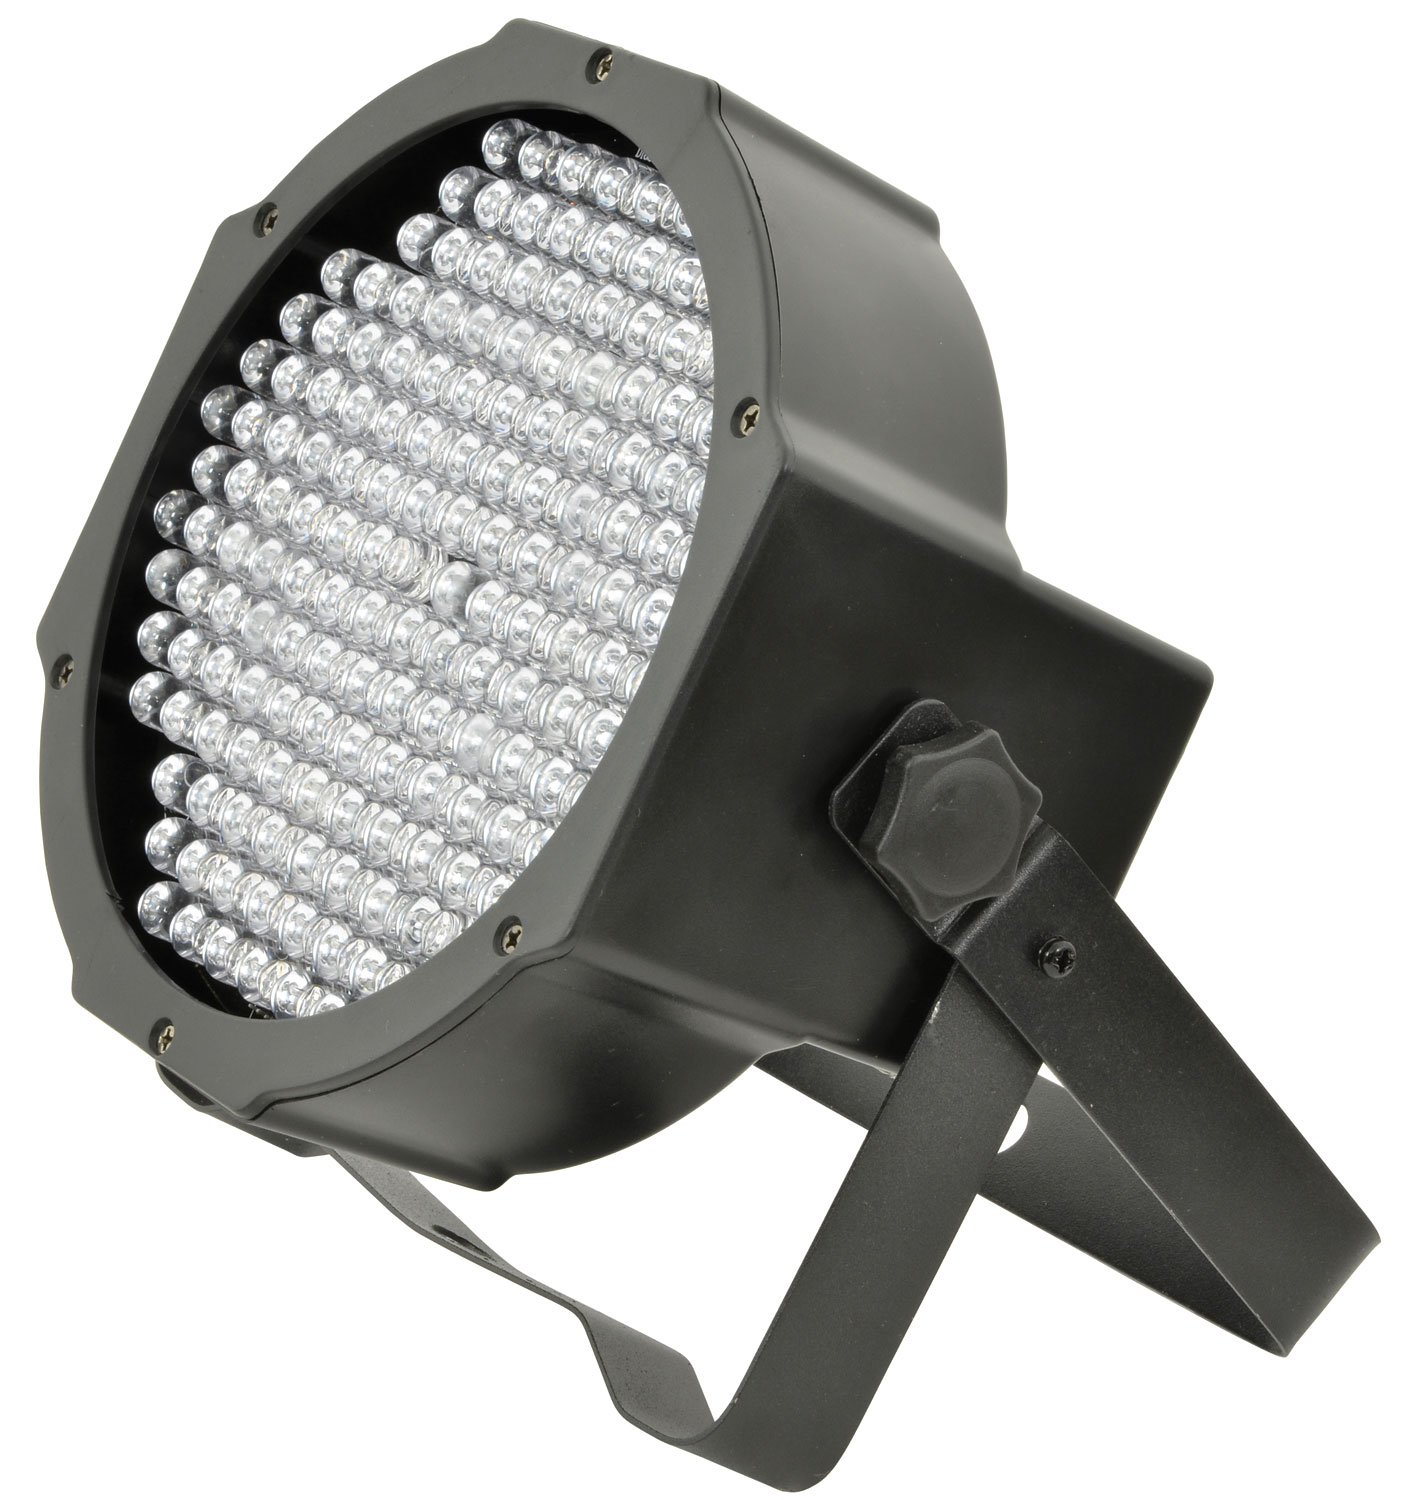 154 LED RGBW PAR48 Can with IR Remote